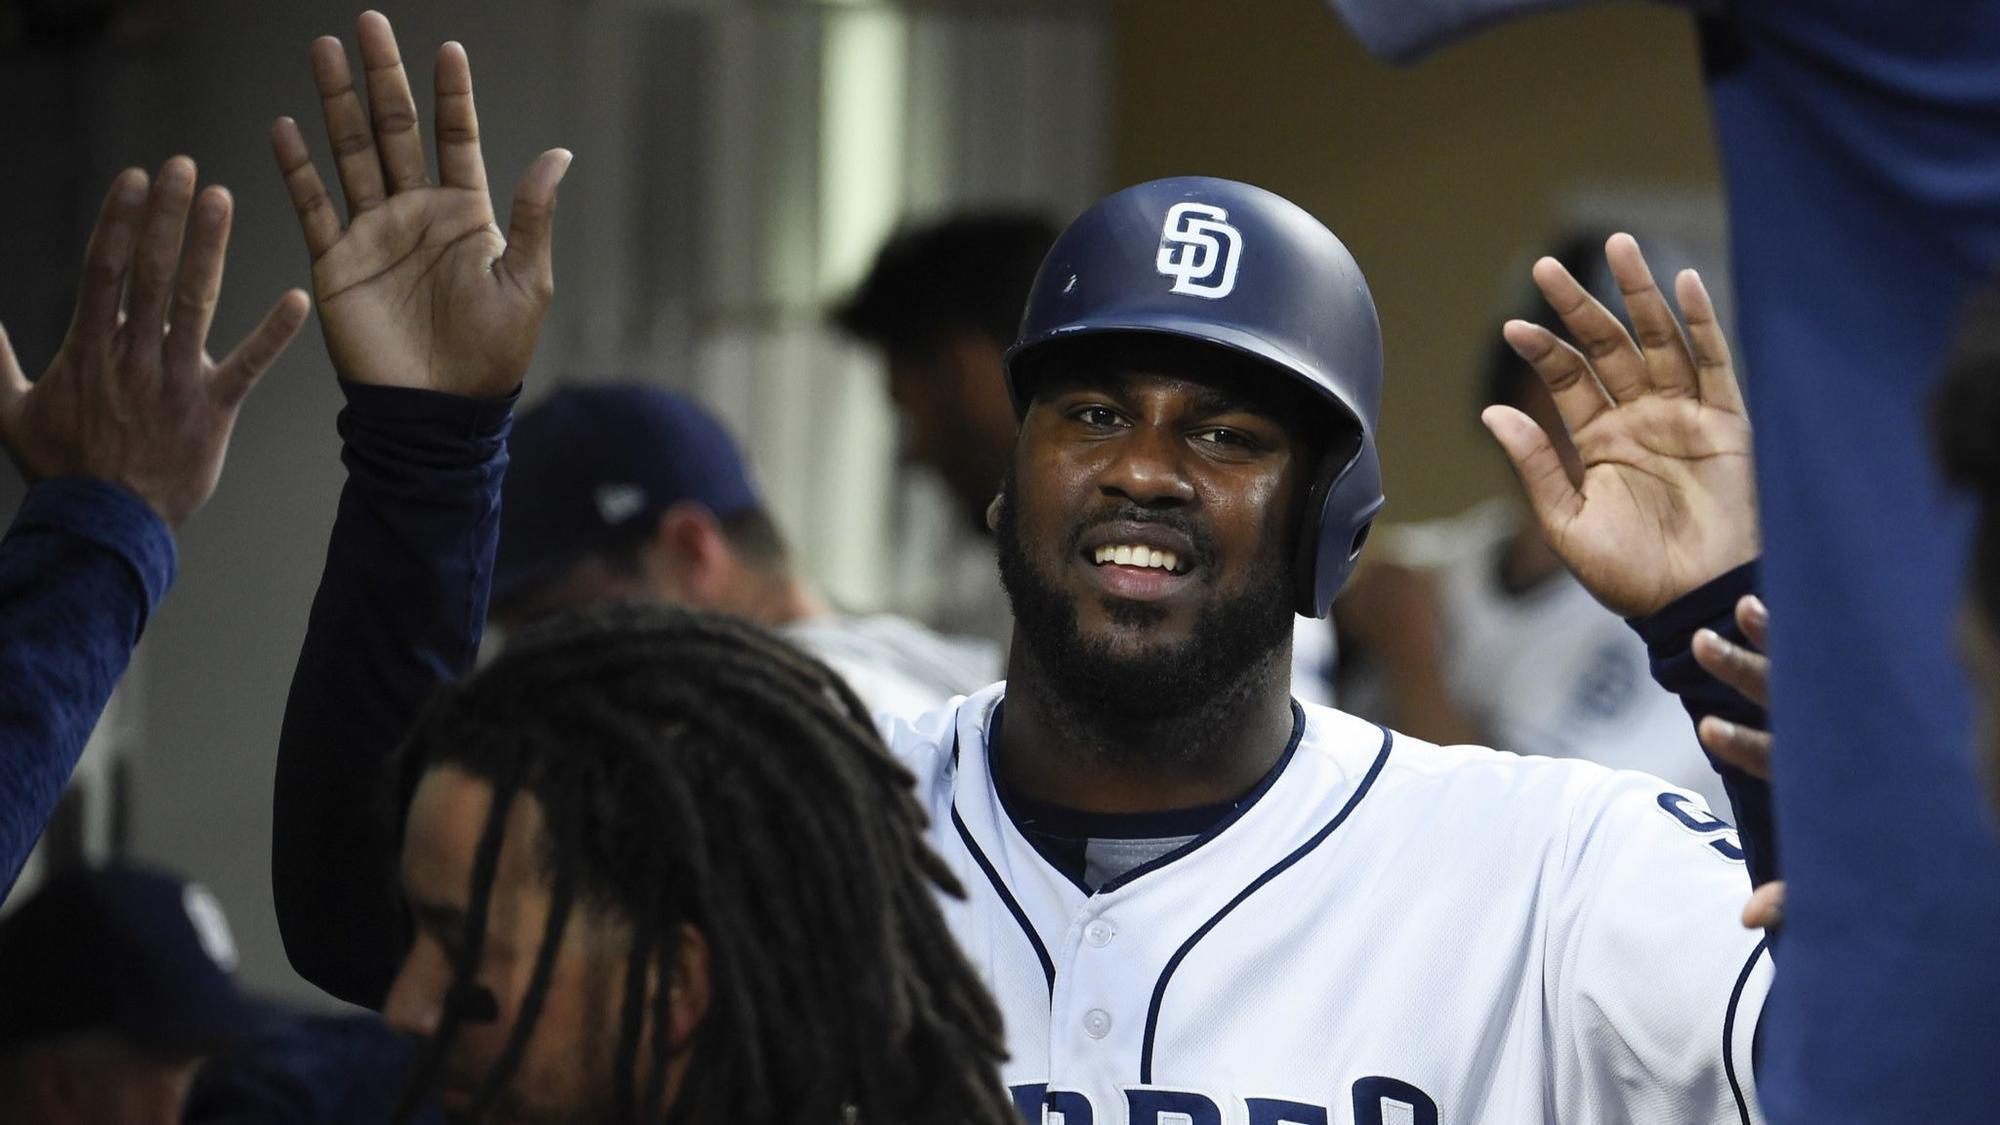 Sd-sp-padres-franmil-reyes-savoring-teachable-moments-20180713